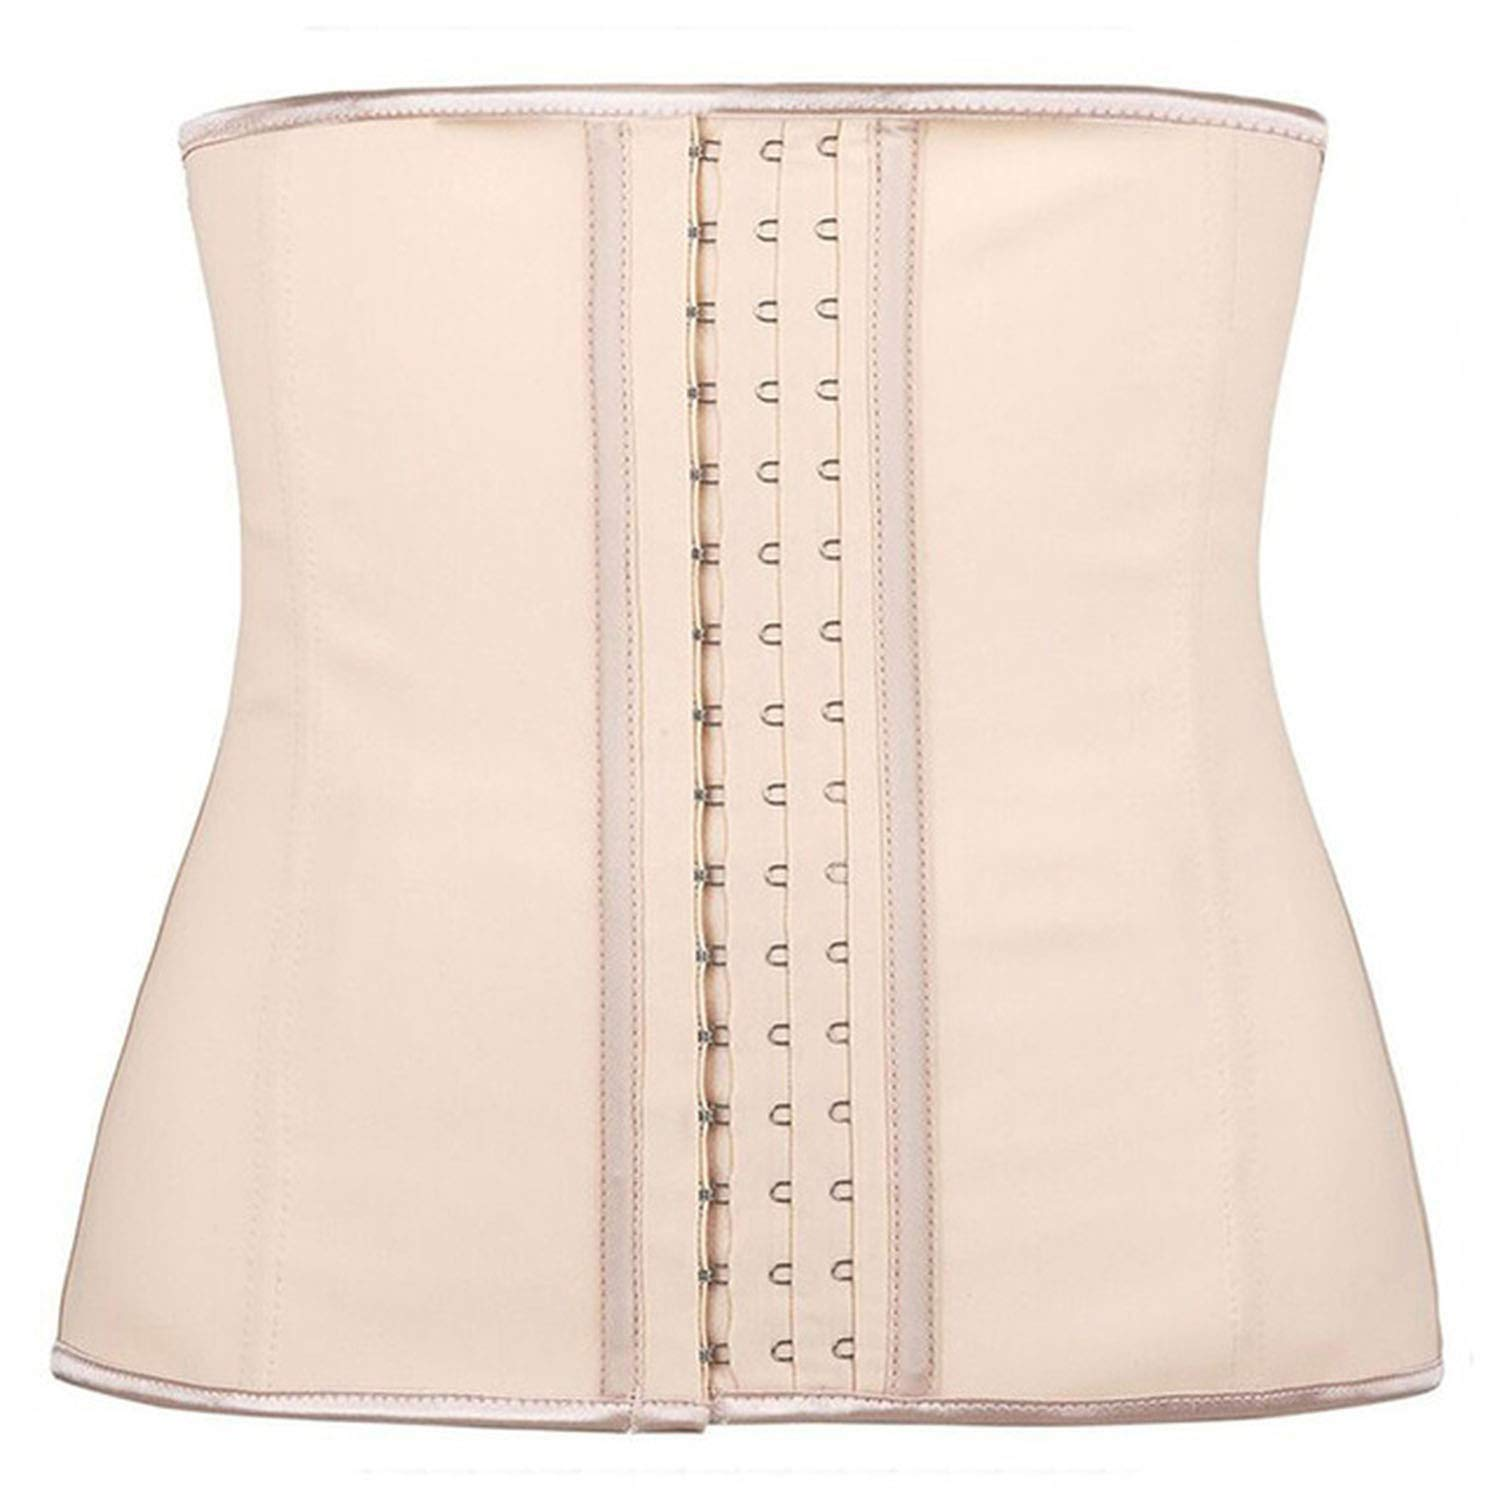 Beige MiniYoo 100% Latex Waist Trainer Corset 9 Steel Bone Shapewear Body Shapers Women Corset Waist Shaper